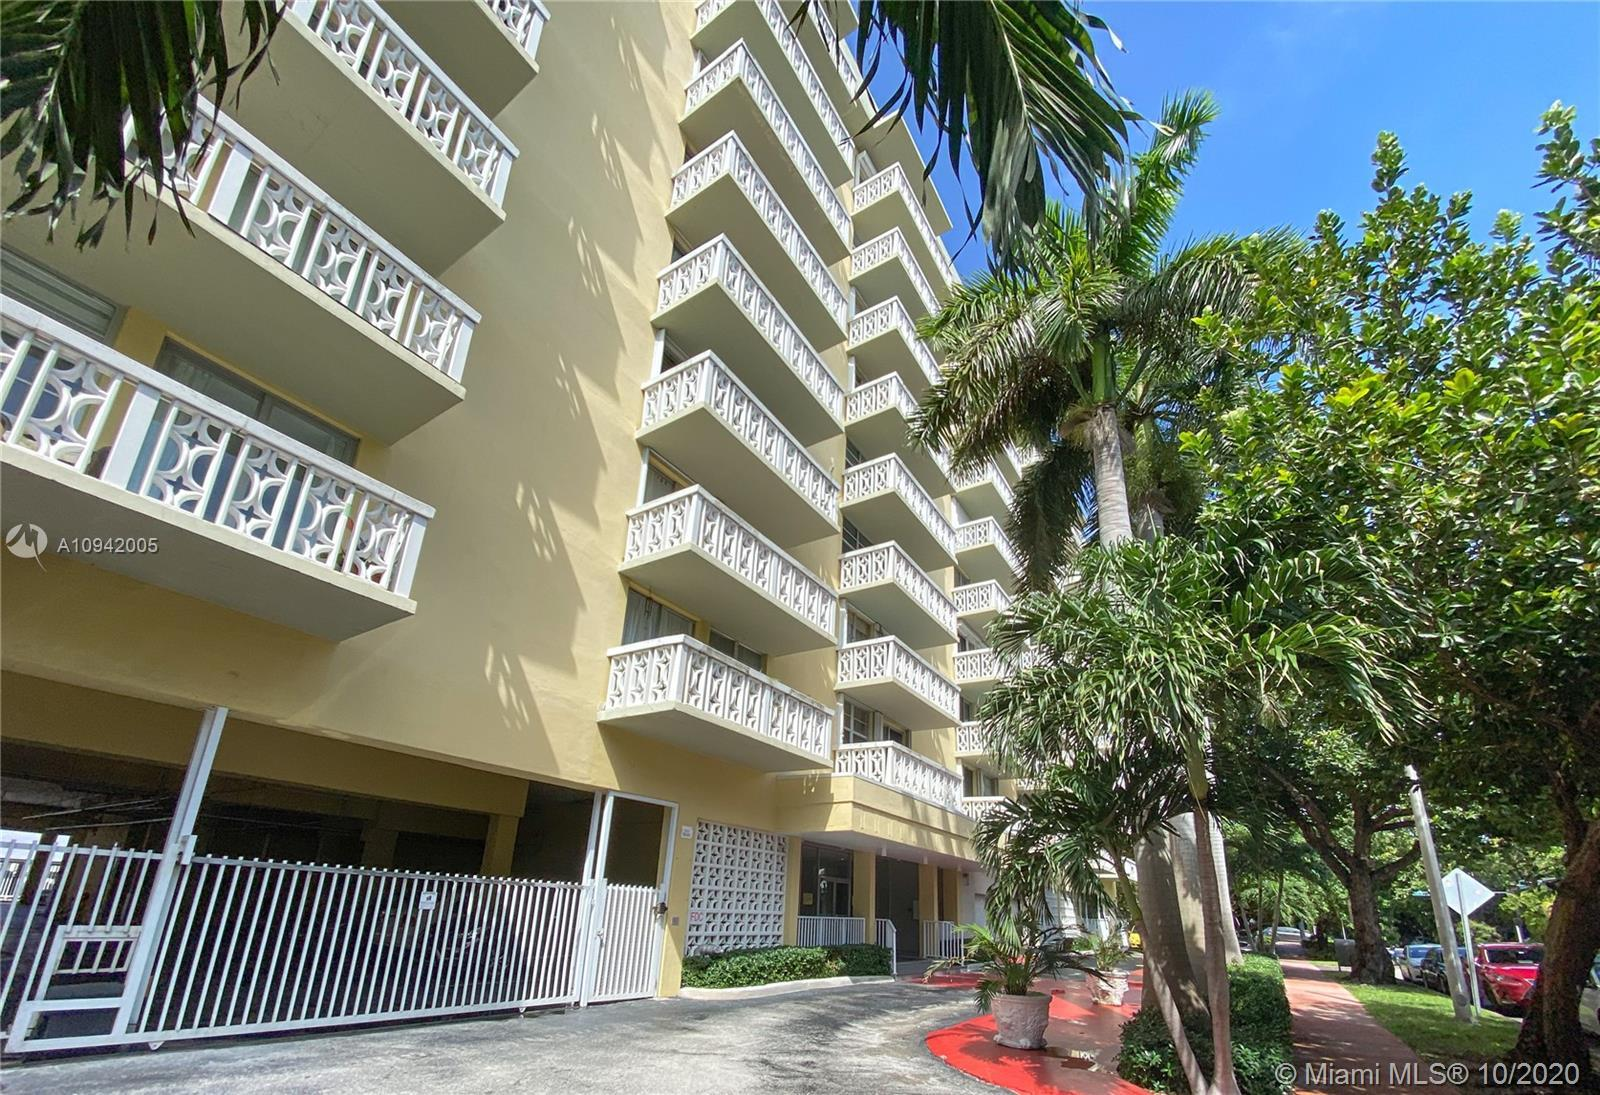 Updated 1br/1.5bath in a prime South Beach location. Unit features a spacious floor plan with an ope